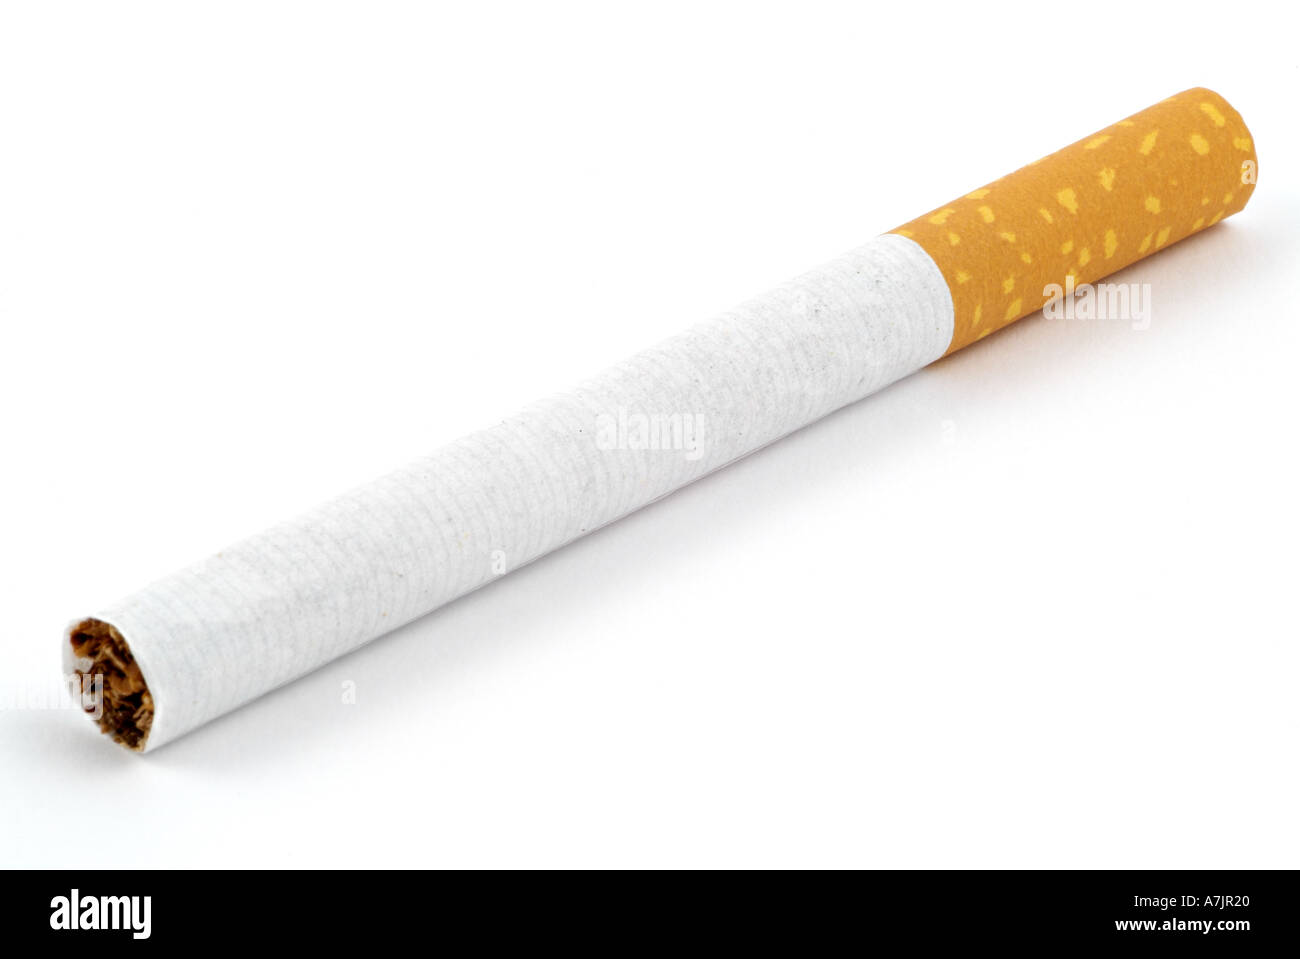 Cigarette Against a White Background - Stock Image